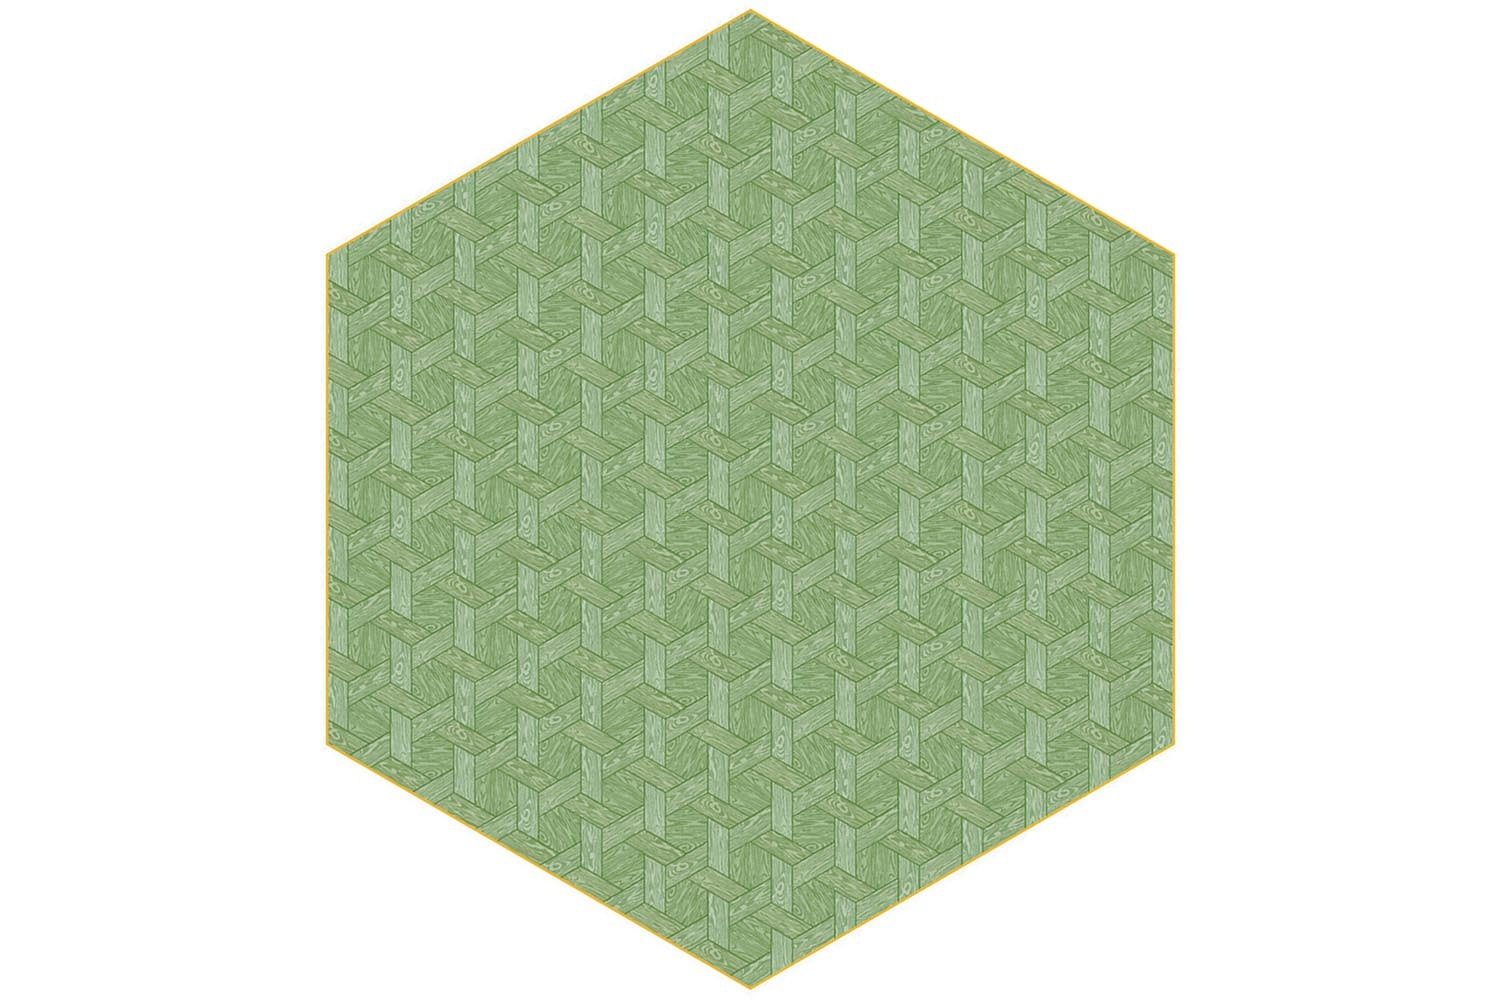 Hexagon Green Rug by Studio Job for Moooi Carpets